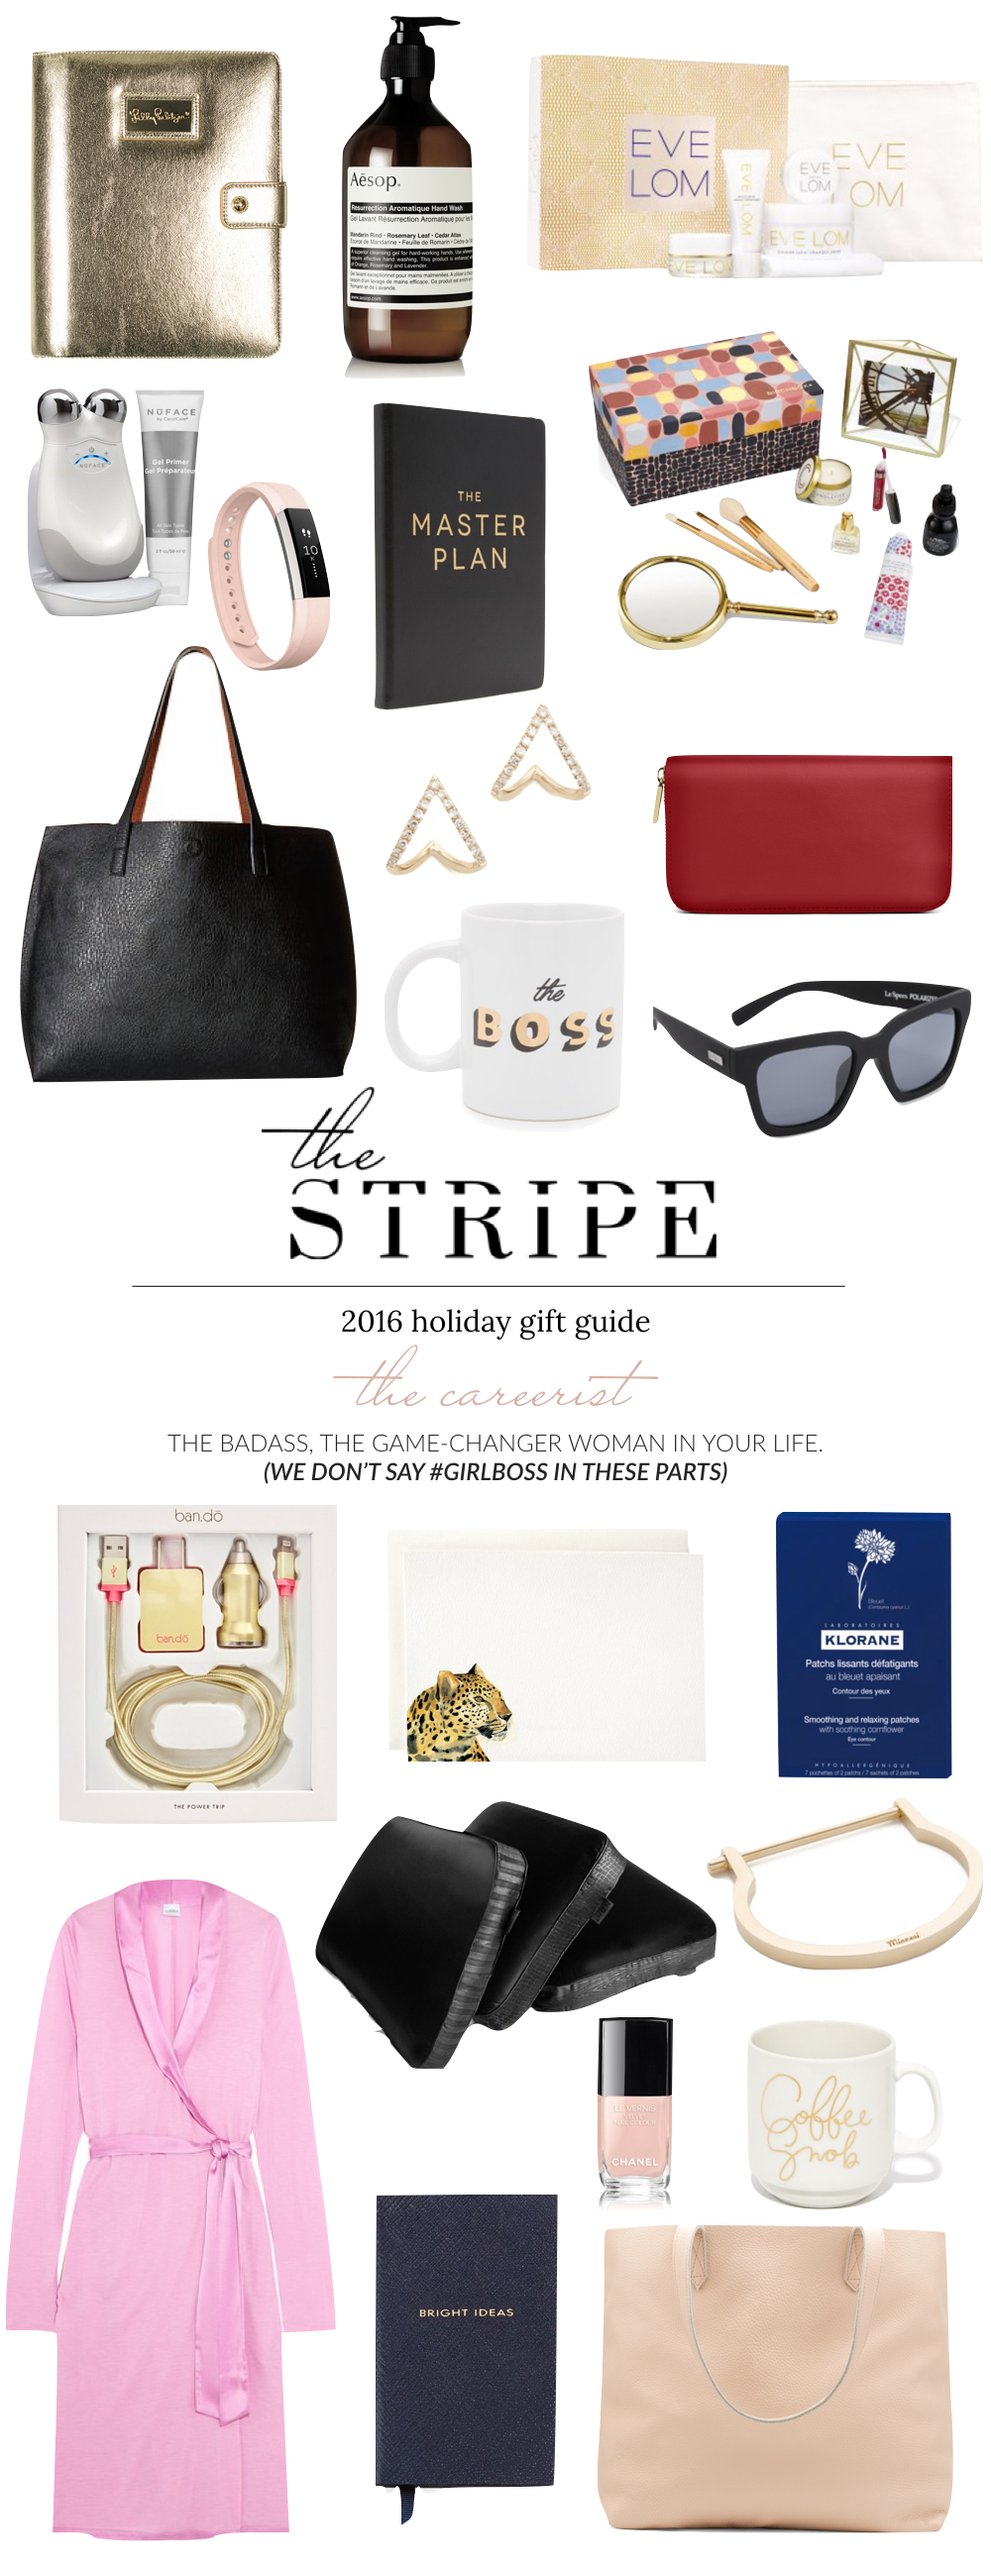 Gifts fro the Career Woman - The Stripe Blog, 2016 Gift Guide